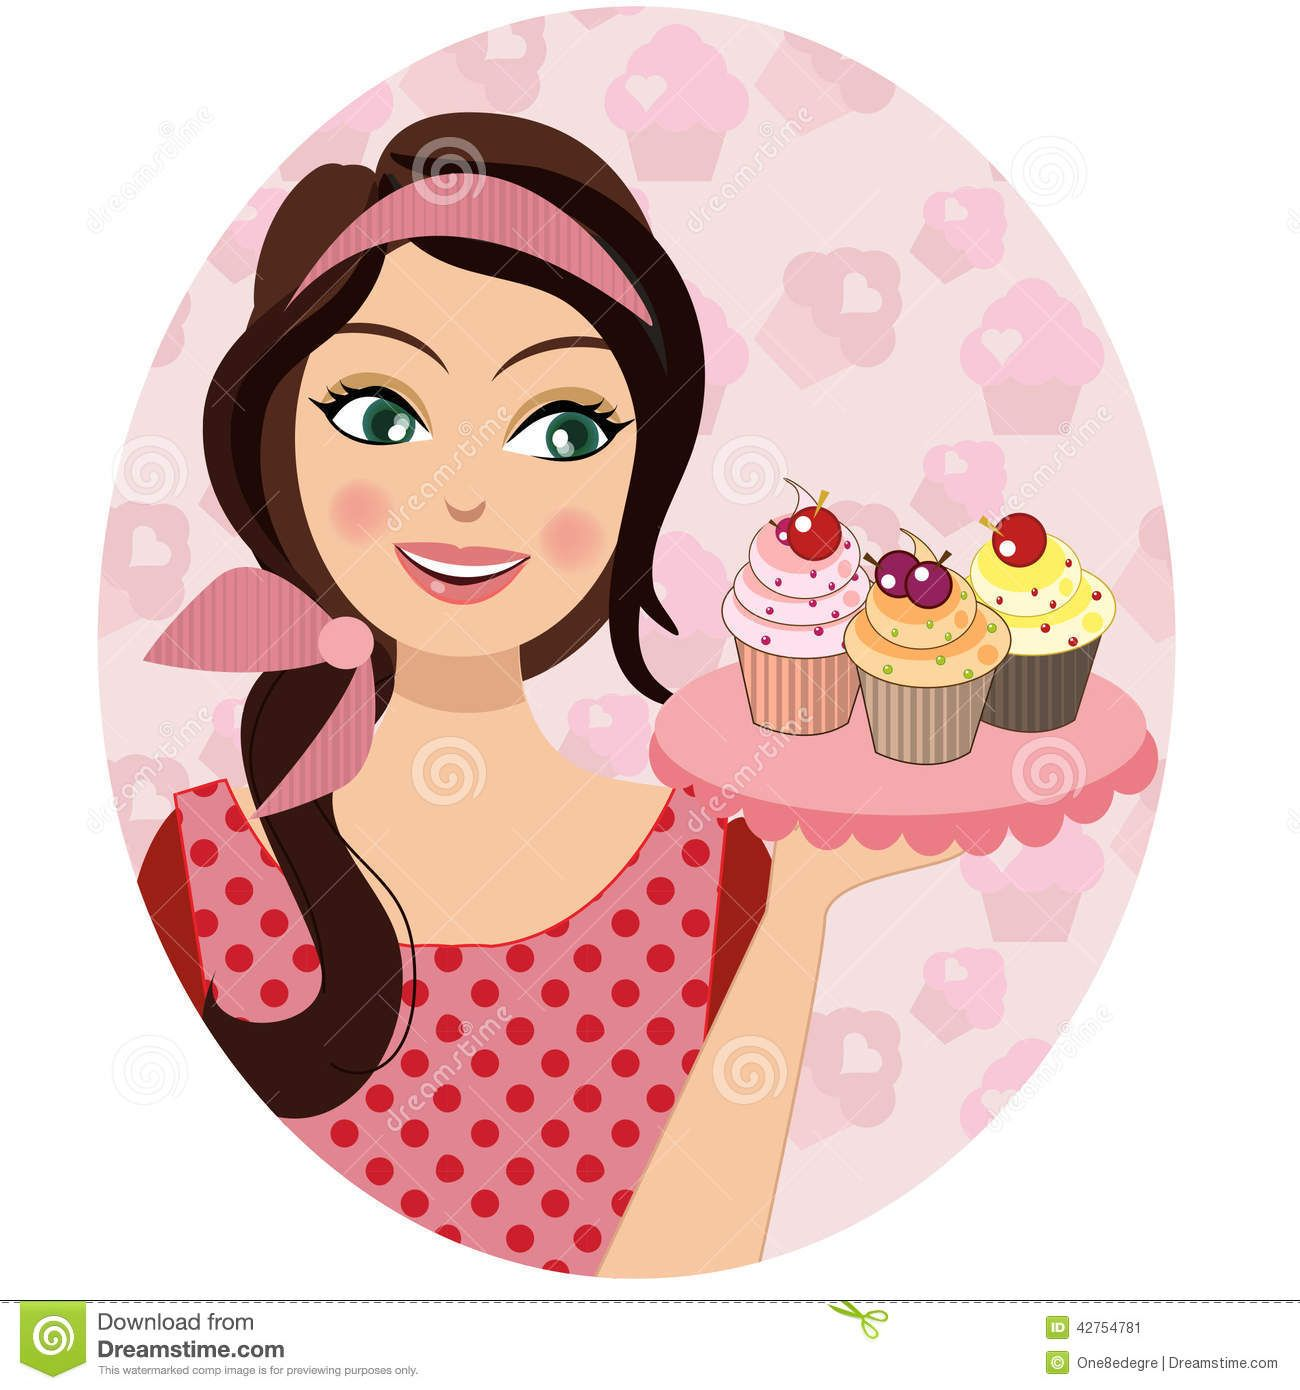 Cliparts free download clip. Baker clipart woman baker